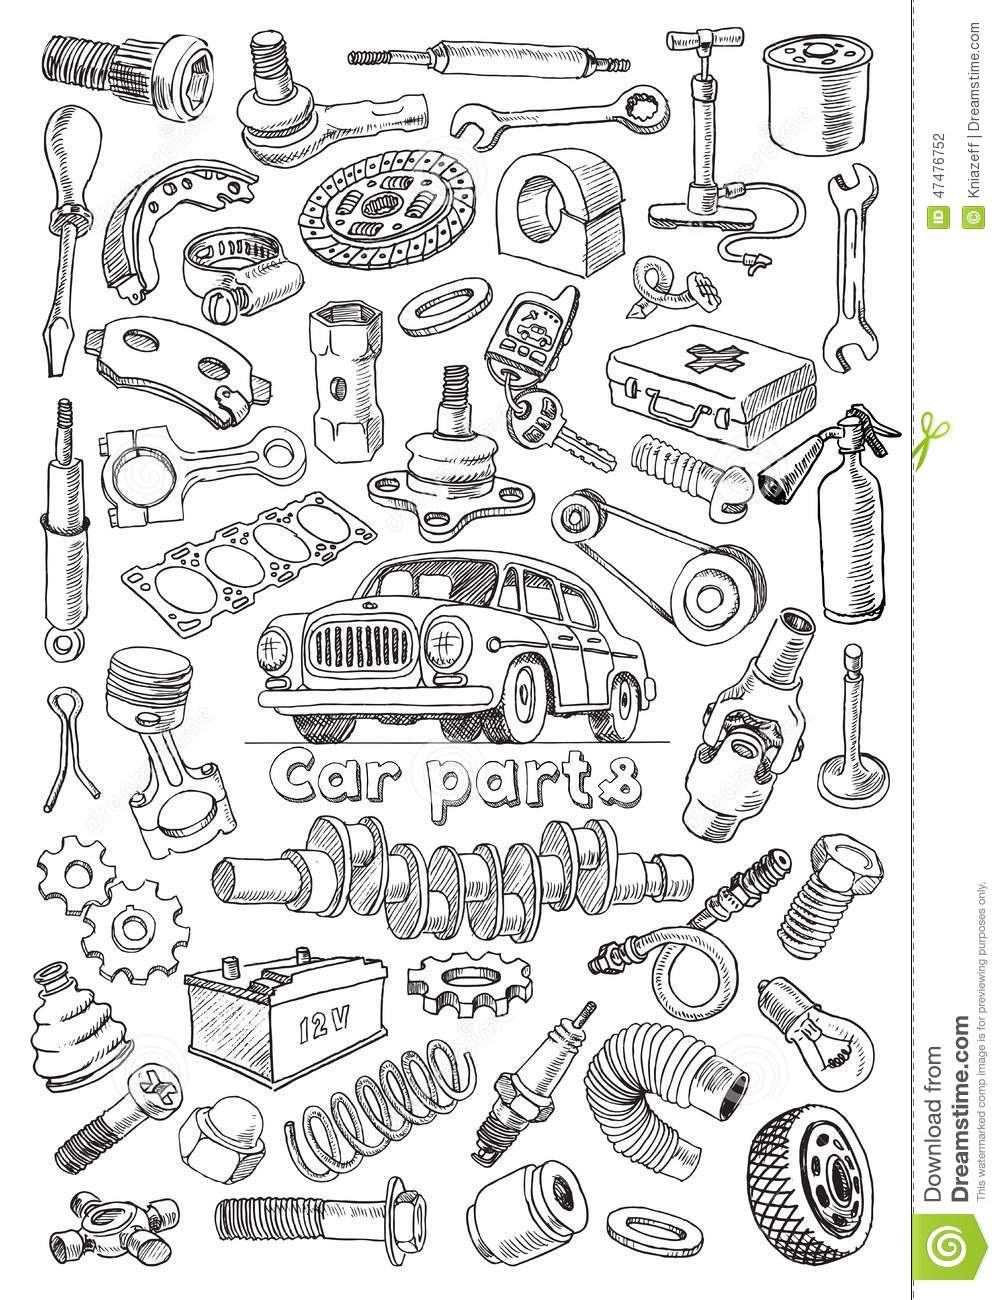 Stock Illustration Car Parts Freehand Drawing Style Image Vintage Automobile Center Illustration Set Vector Image47476752 on Ford 3 8 Engine Diagram